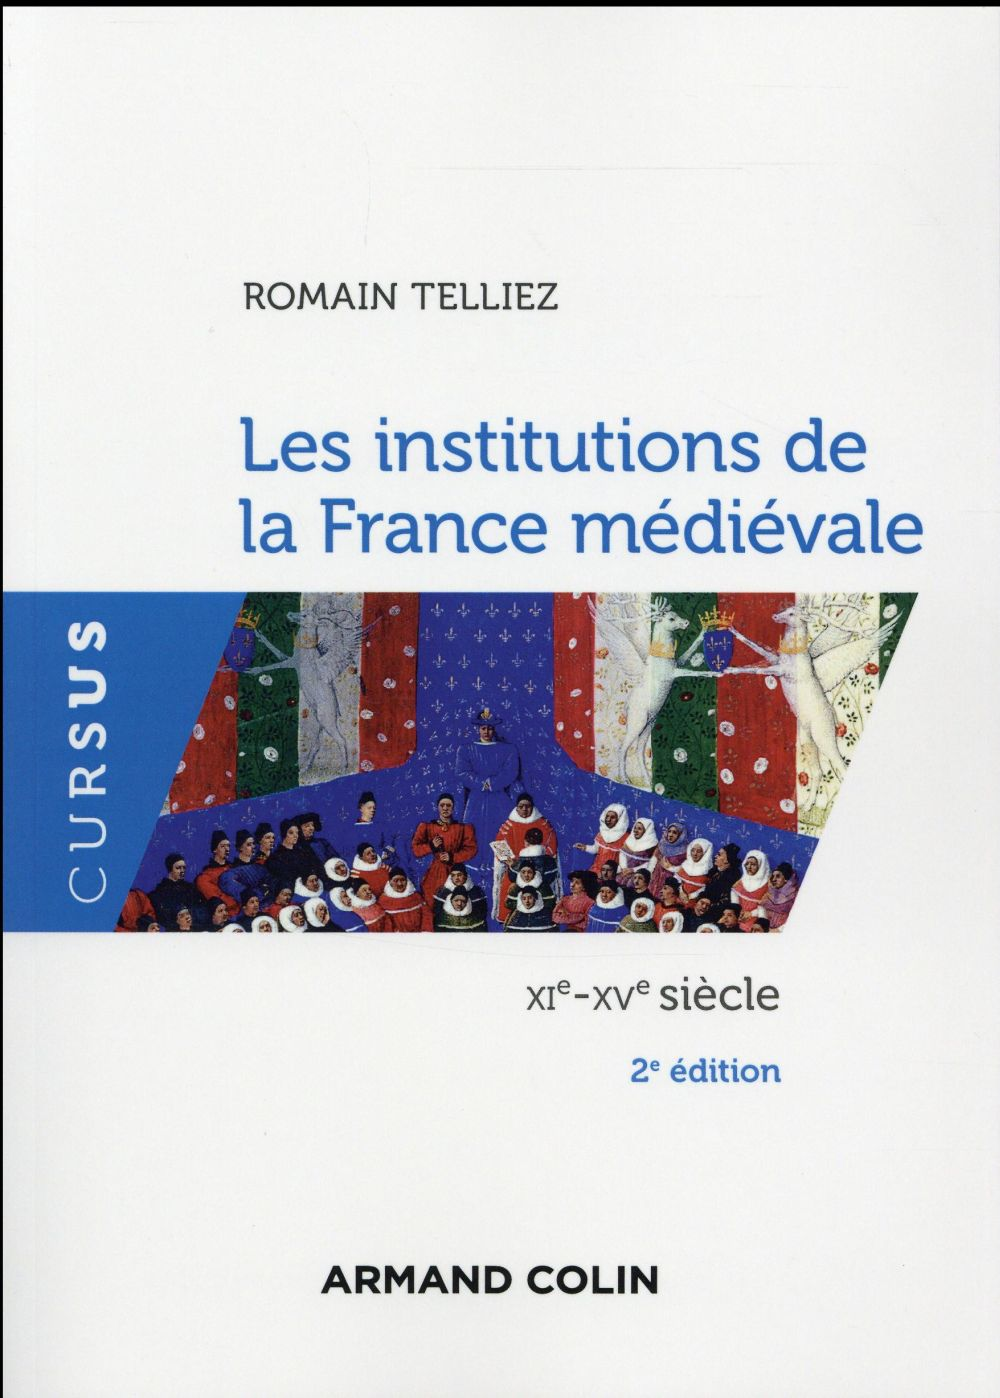 TELLIEZ - LES INSTITUTIONS DE LA FRANCE